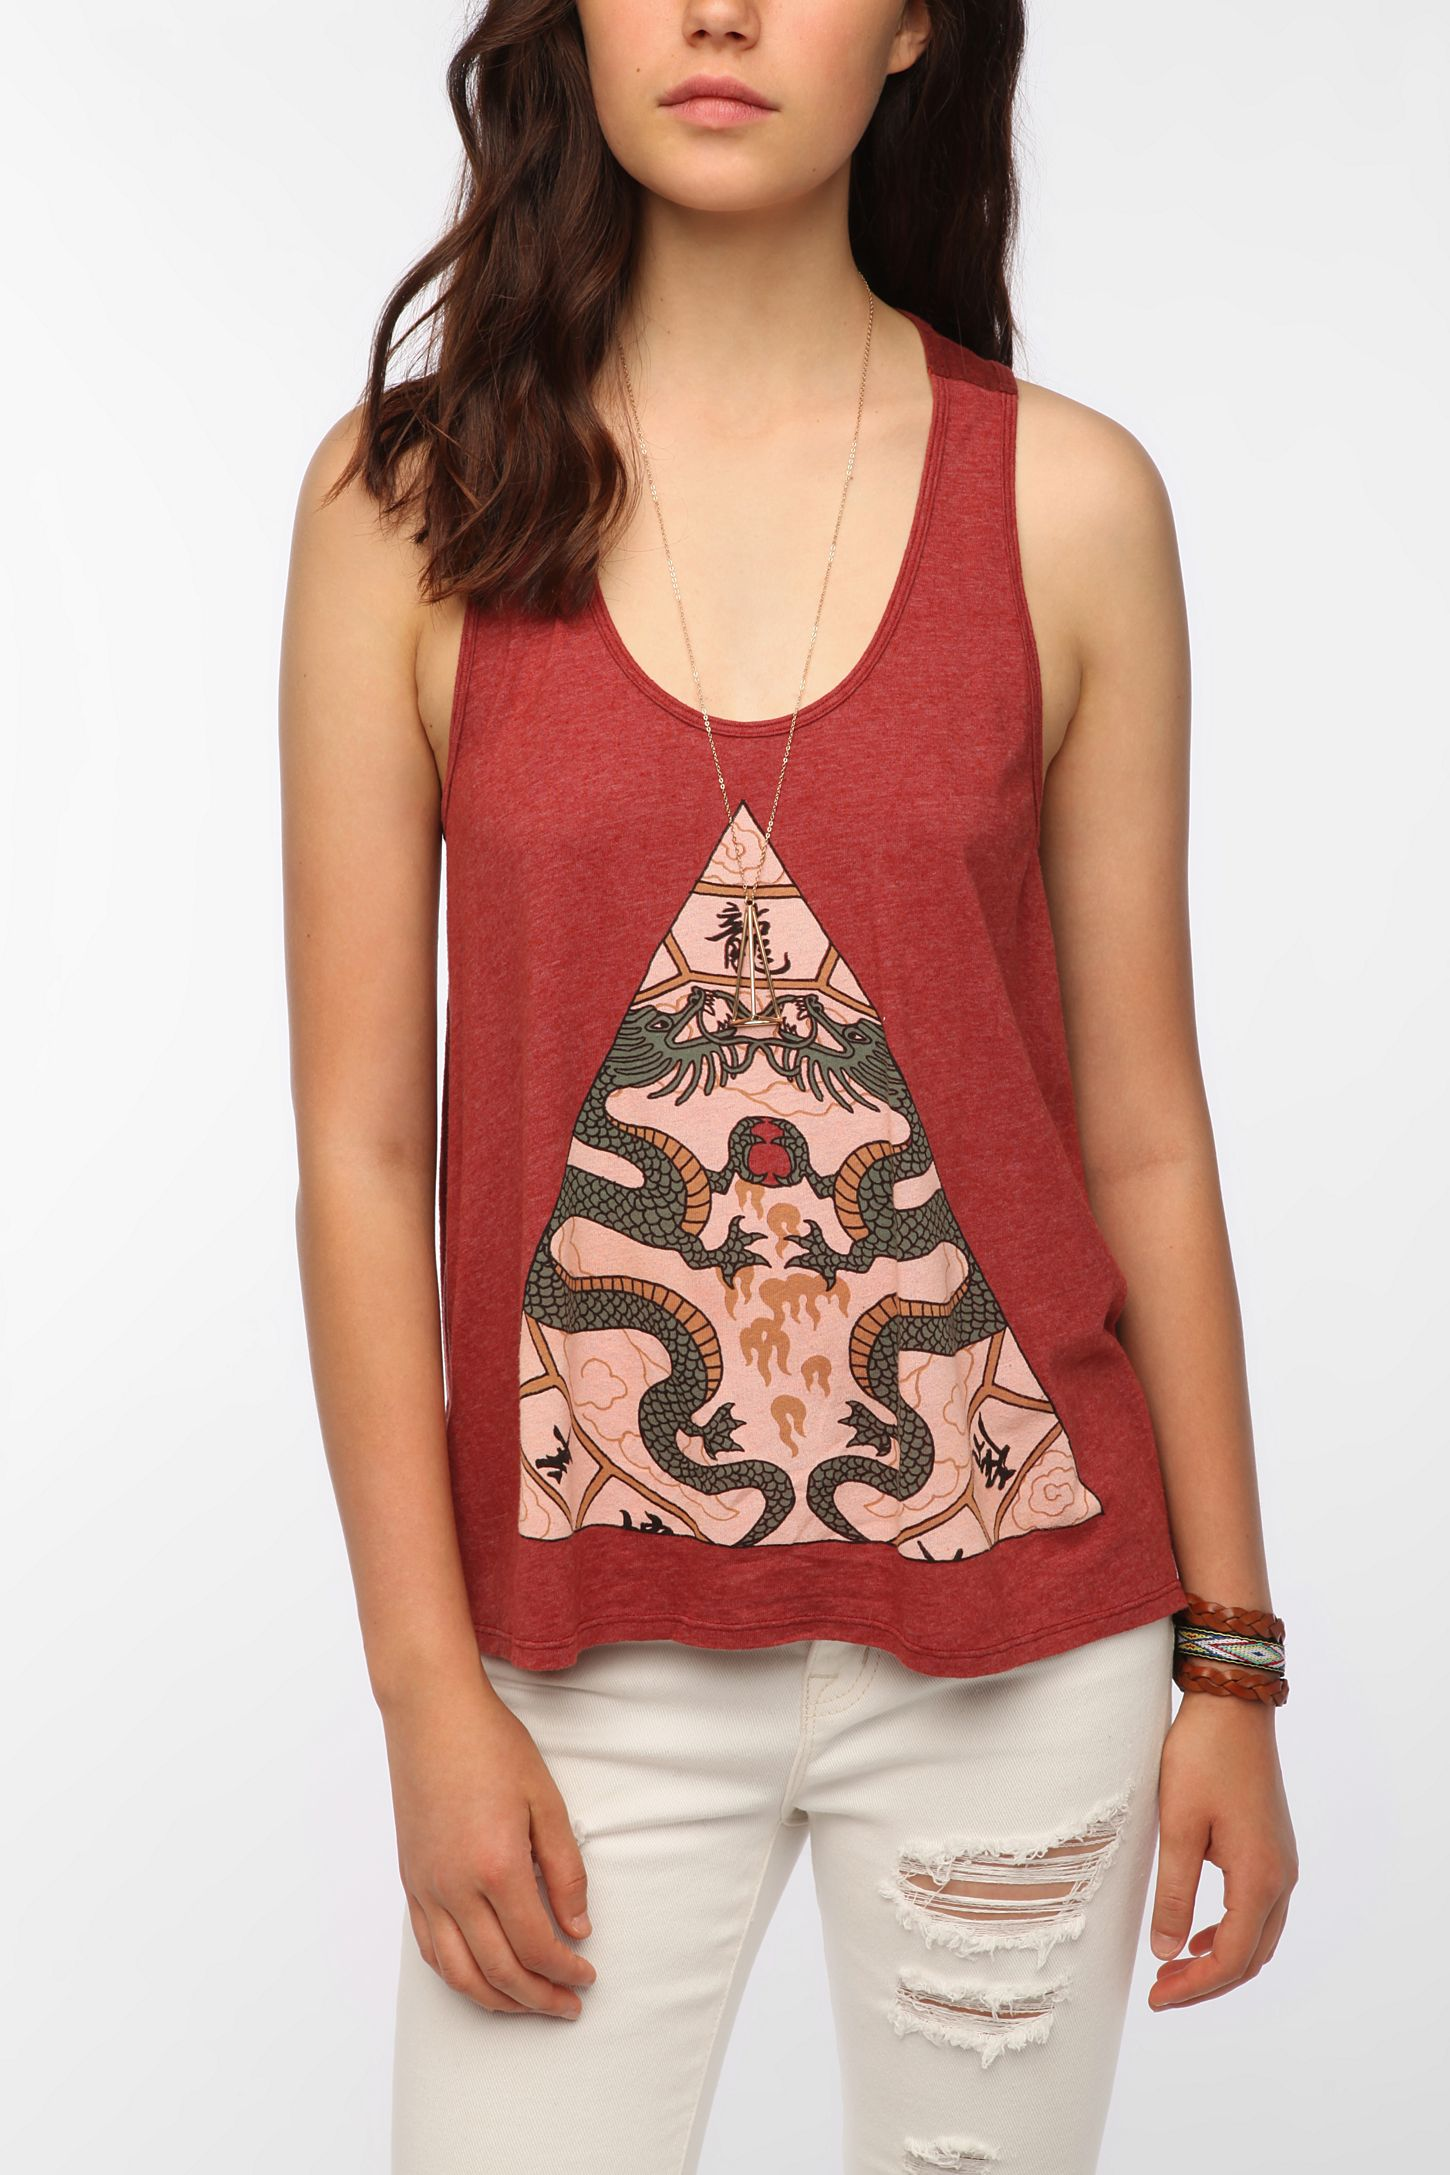 a24bf6fee8d Truly Madly Deeply Dragon Horoscope Tank Top | Urban Outfitters